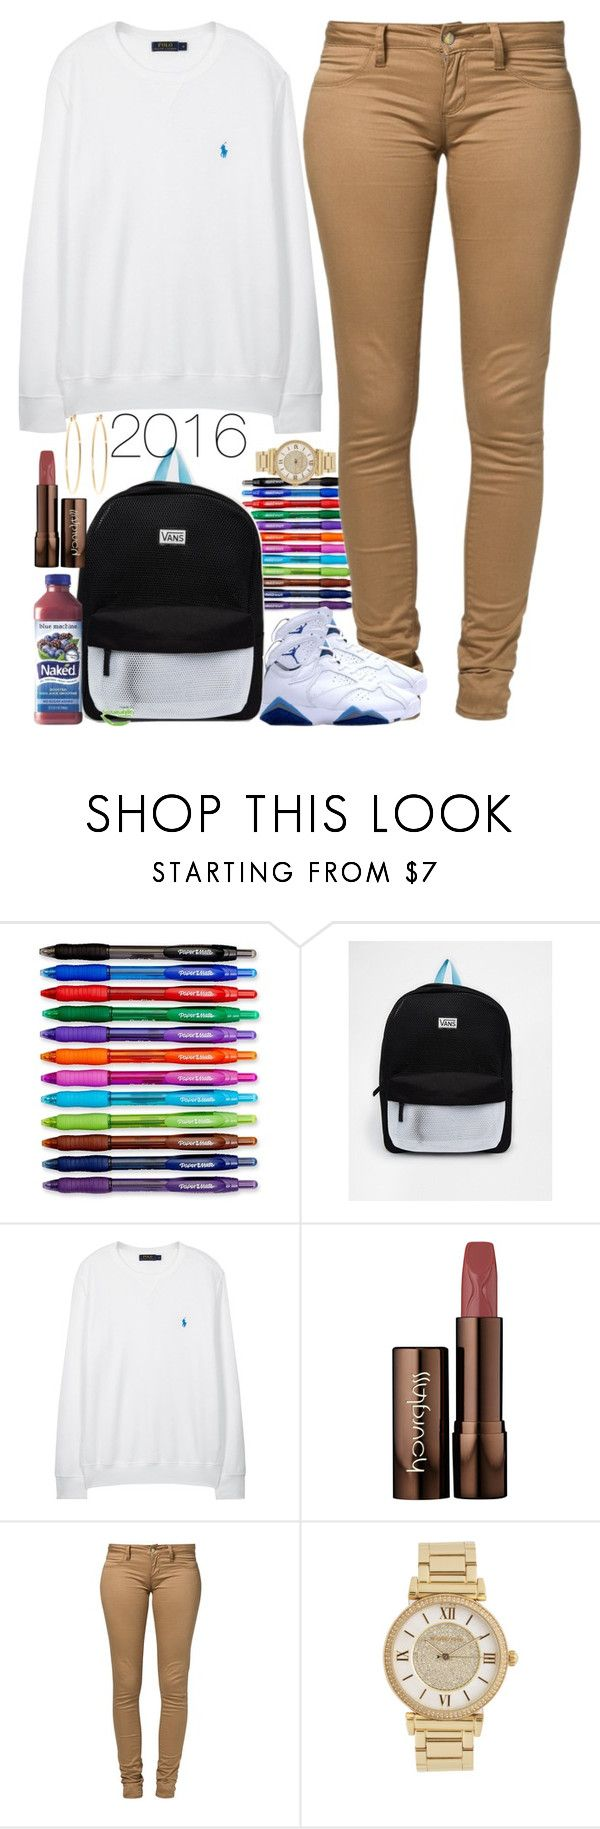 """It's about that time"" by keep-that-ish-trill ❤ liked on Polyvore featuring Paper Mate, Vans, Polo Ralph Lauren, Hourglass Cosmetics, Monkee Genes, Michael Kors and Brooks Brothers"